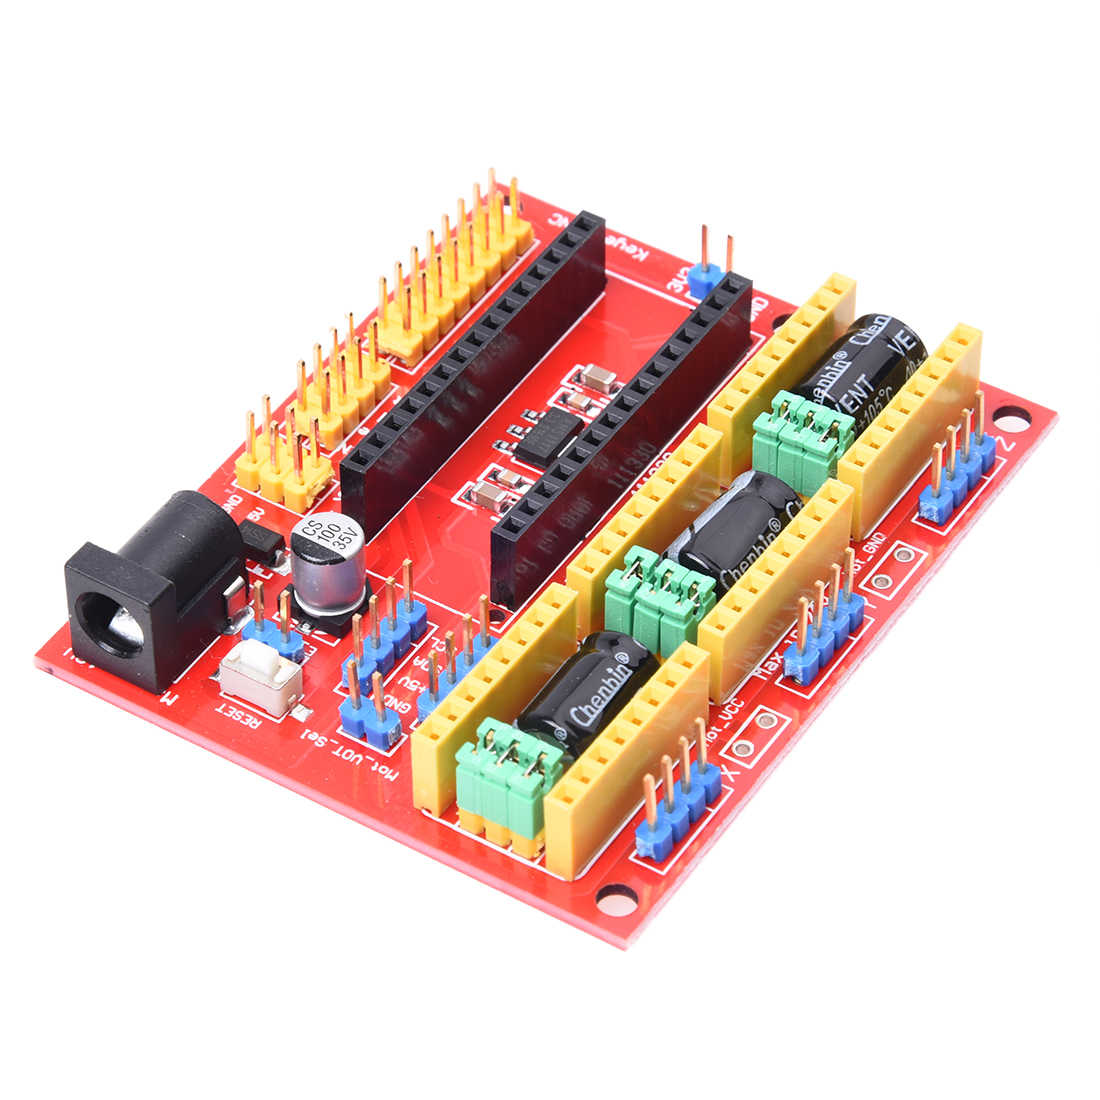 1 x Red CCL CNC V4 engraving machine expansion board For GRBL